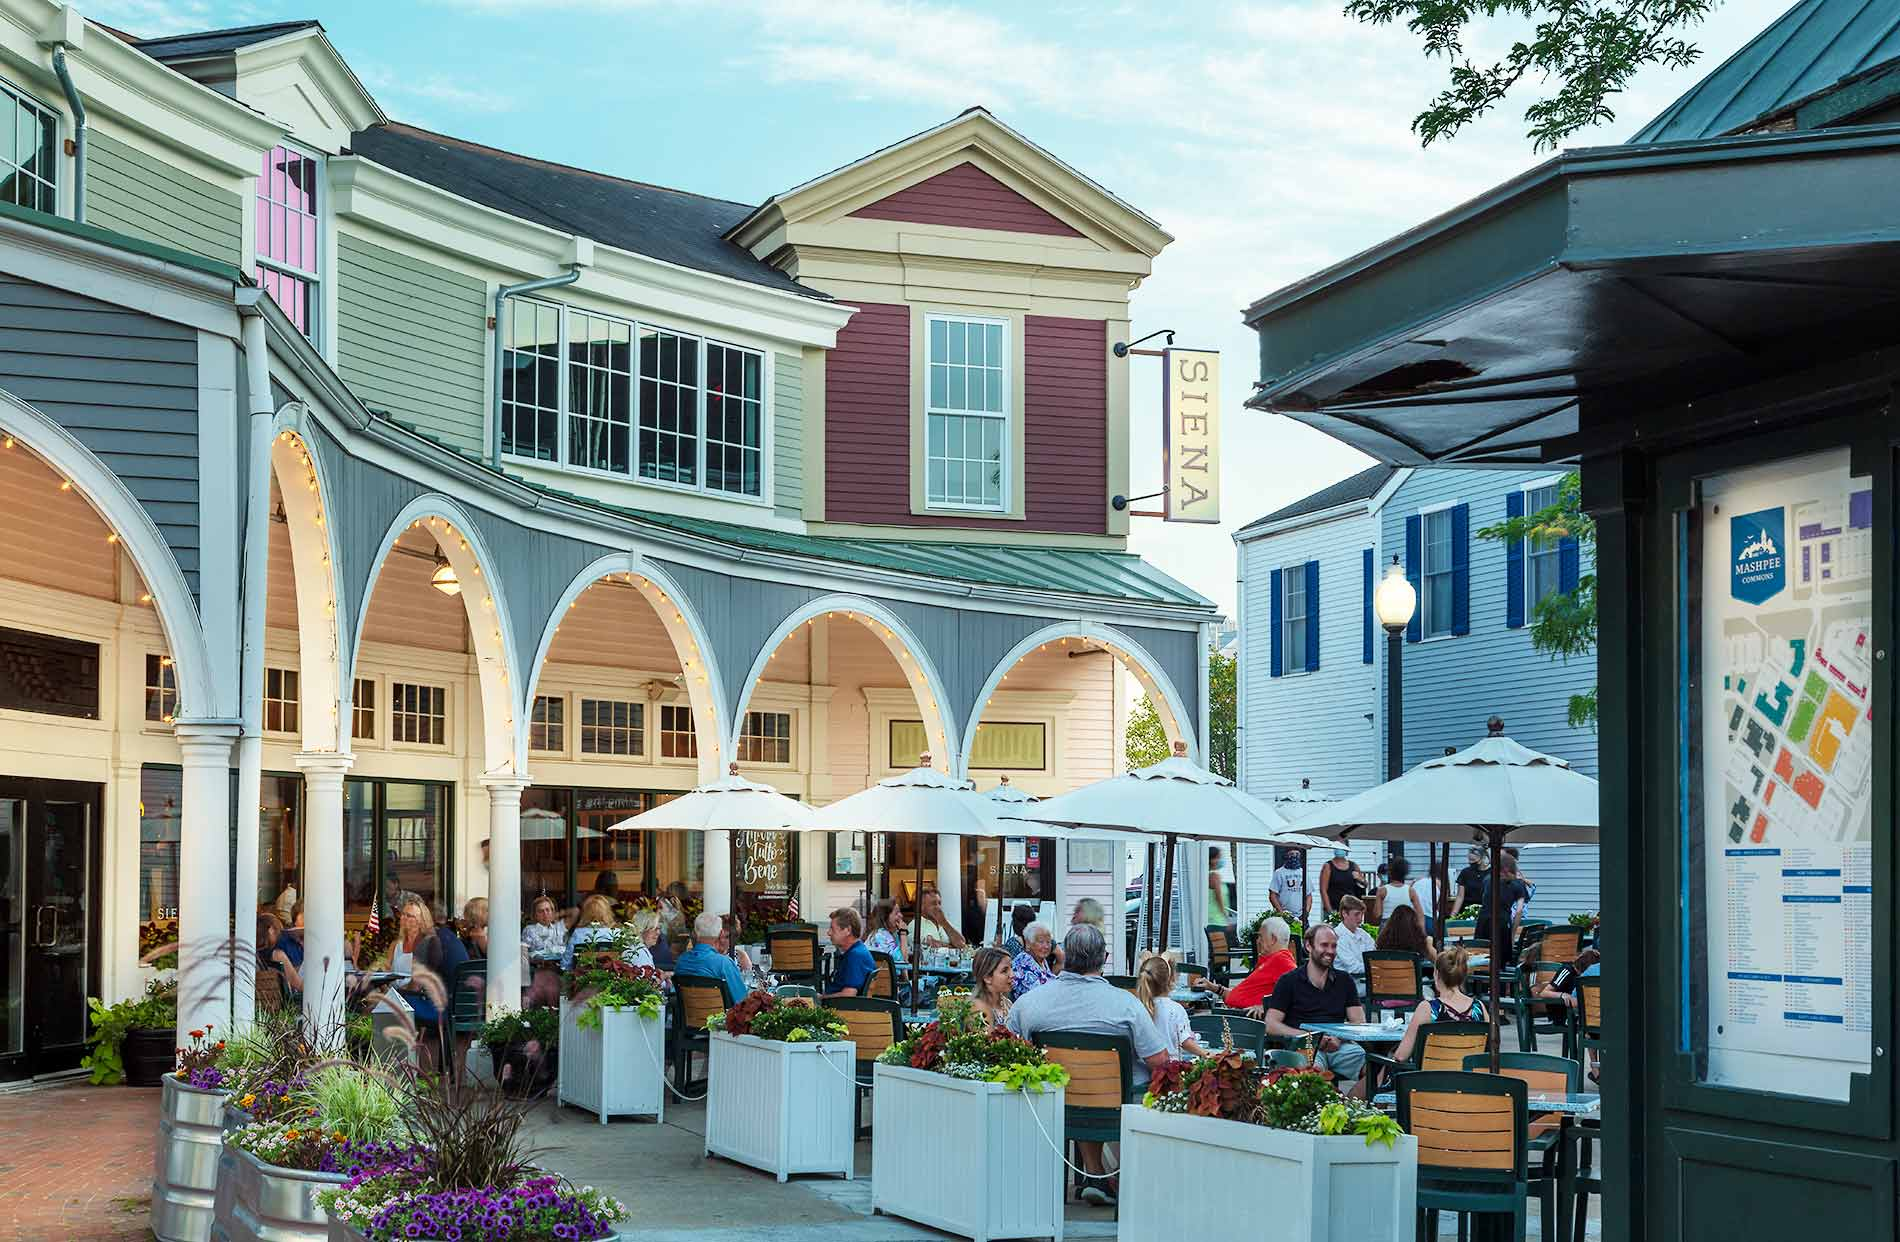 Cape Cod shopping and dining Mashpee Commons